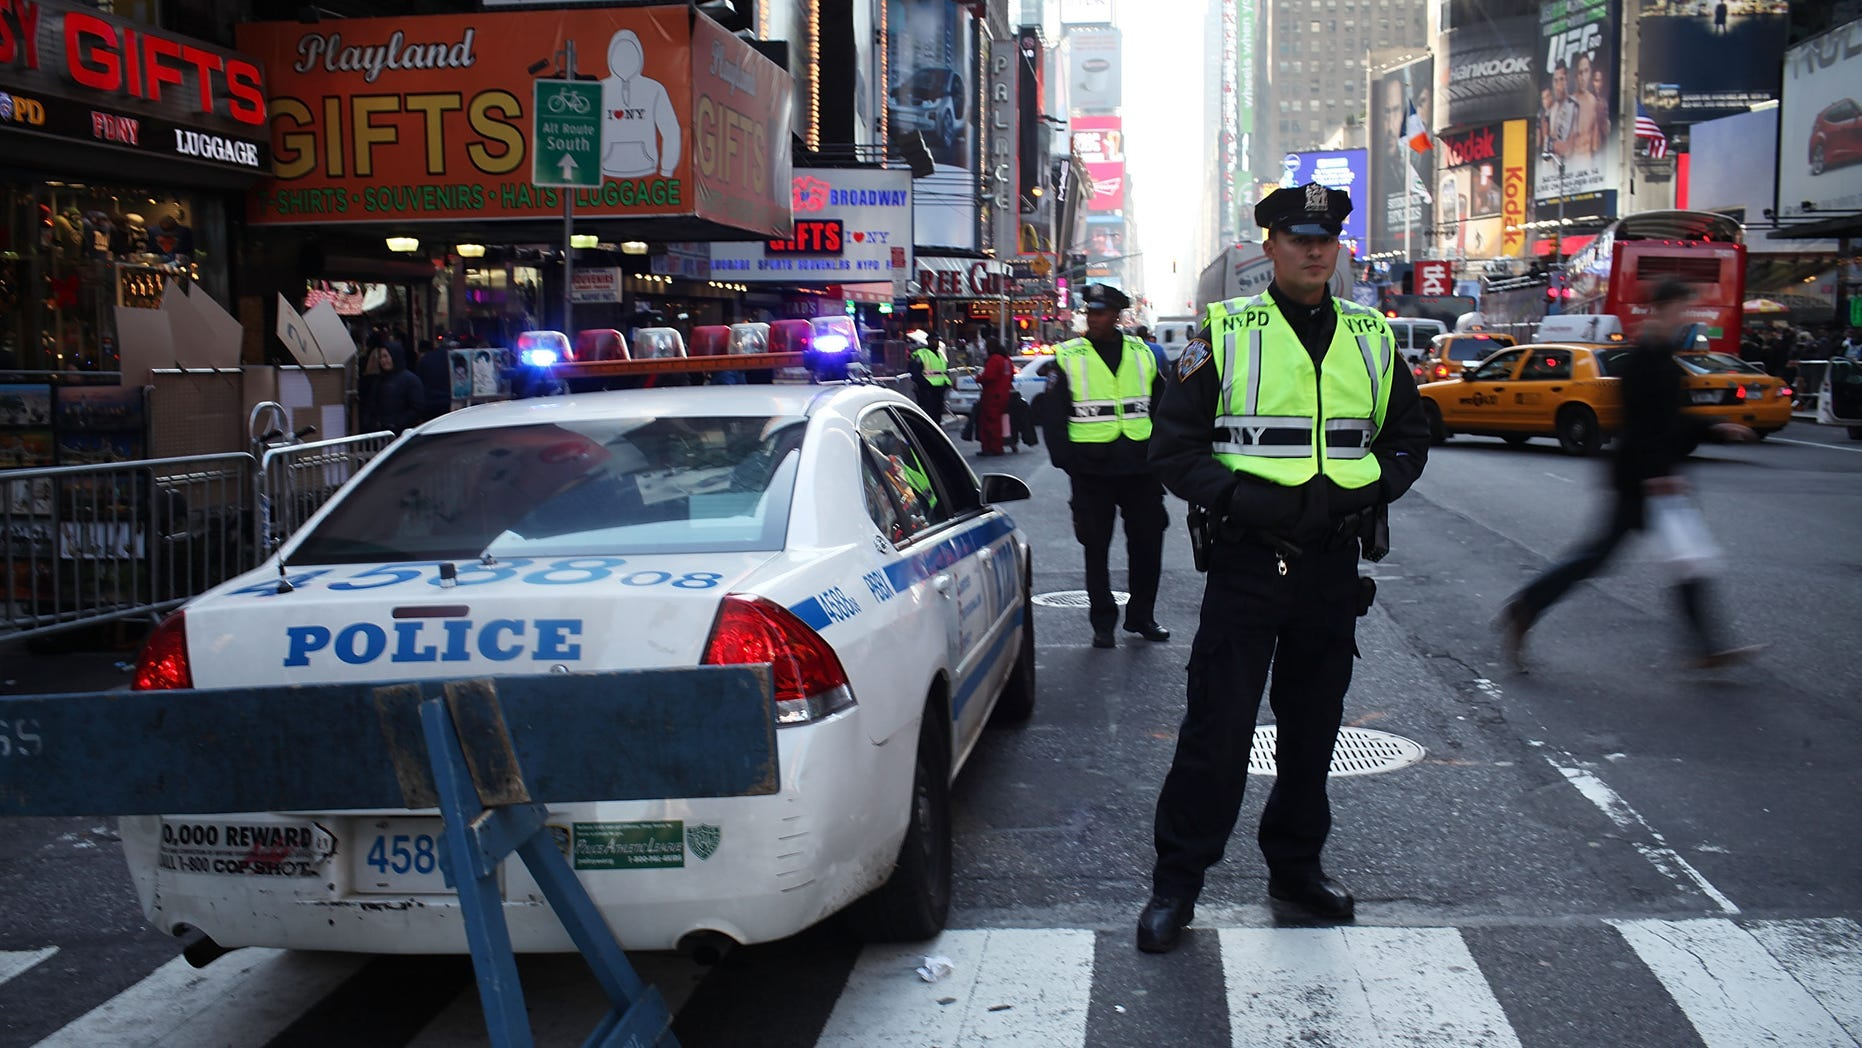 NEW YORK, NY - DECEMBER 30: Police stand guard as thousands of people crowd into Times Square on the day before New Years Eve on December 30, 2011 in New York City. Tens of thousands of tourists and New Yorkers will crowd into Times Square on New Year's Eve to ring in 2012 and watch the historic ball drop.  (Photo by Spencer Platt/Getty Images)